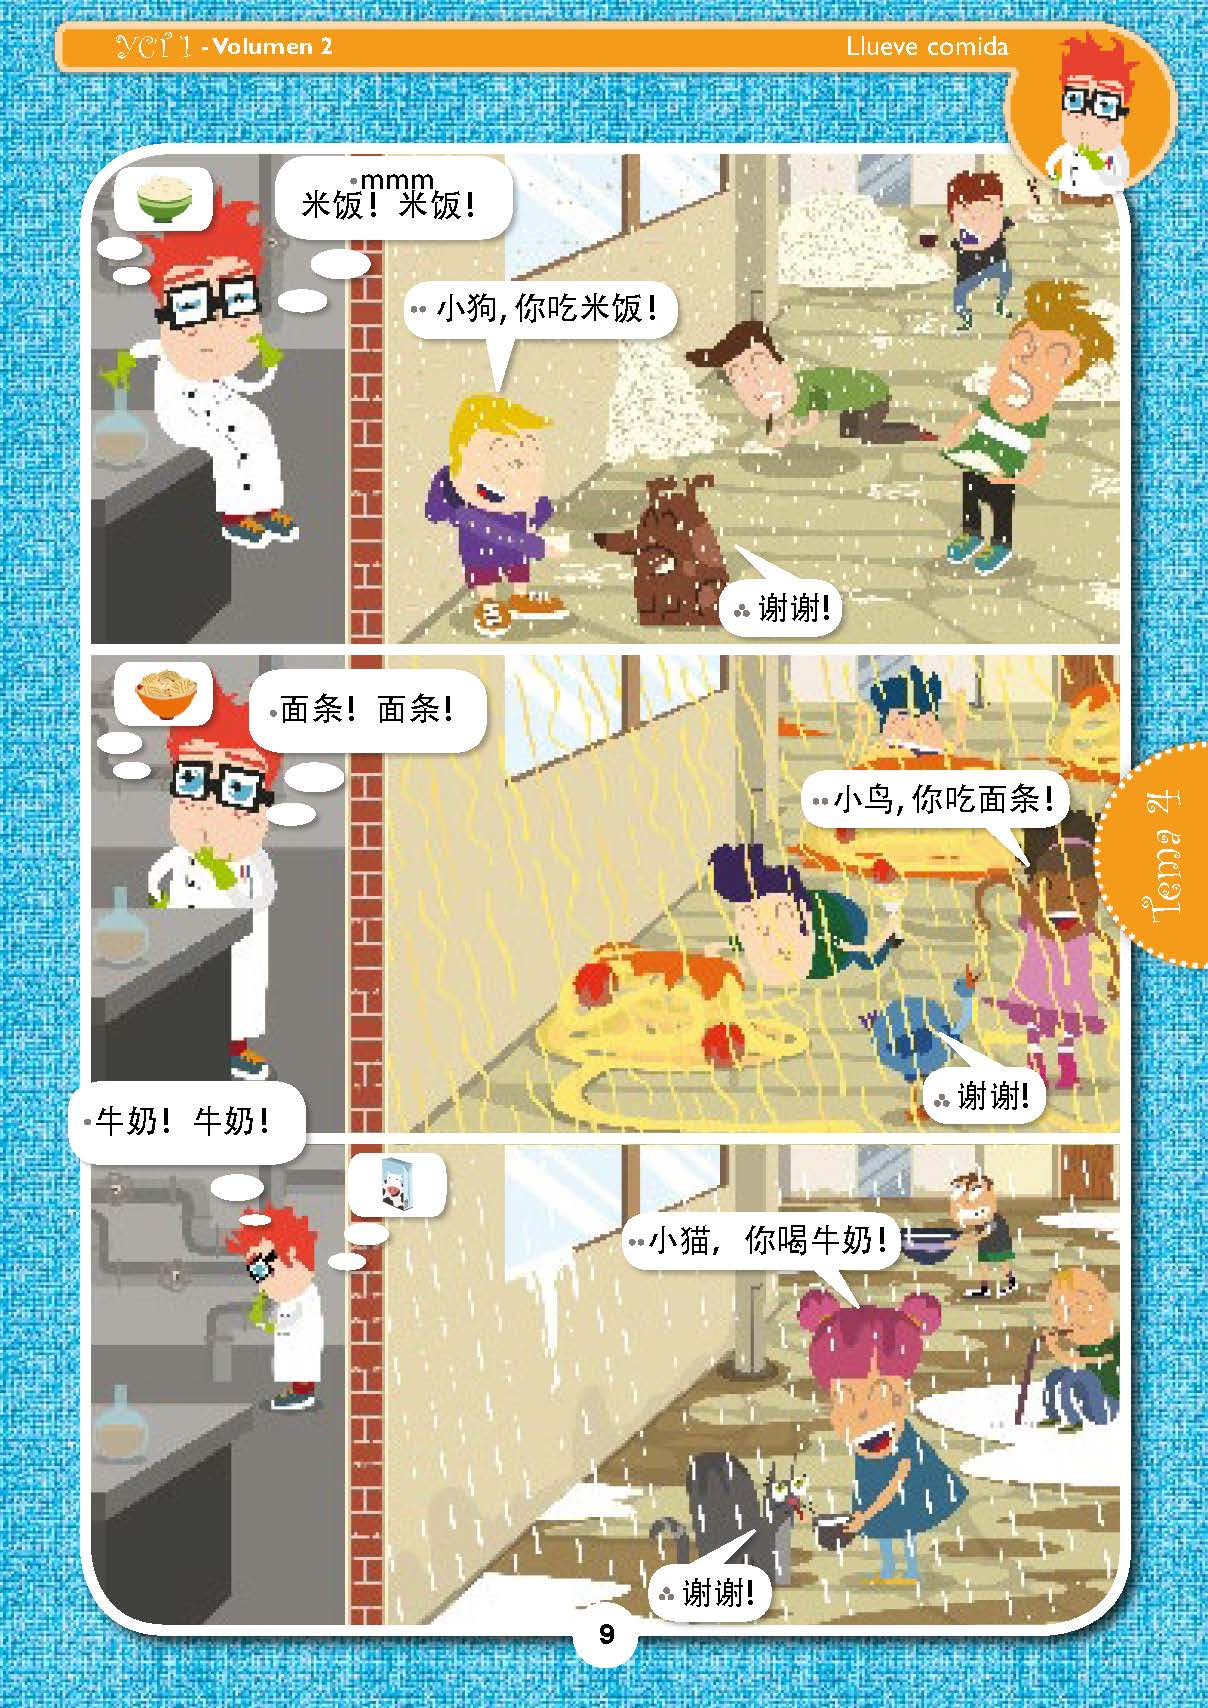 Chinese-Story__YCT1 Vol_2_Page_09